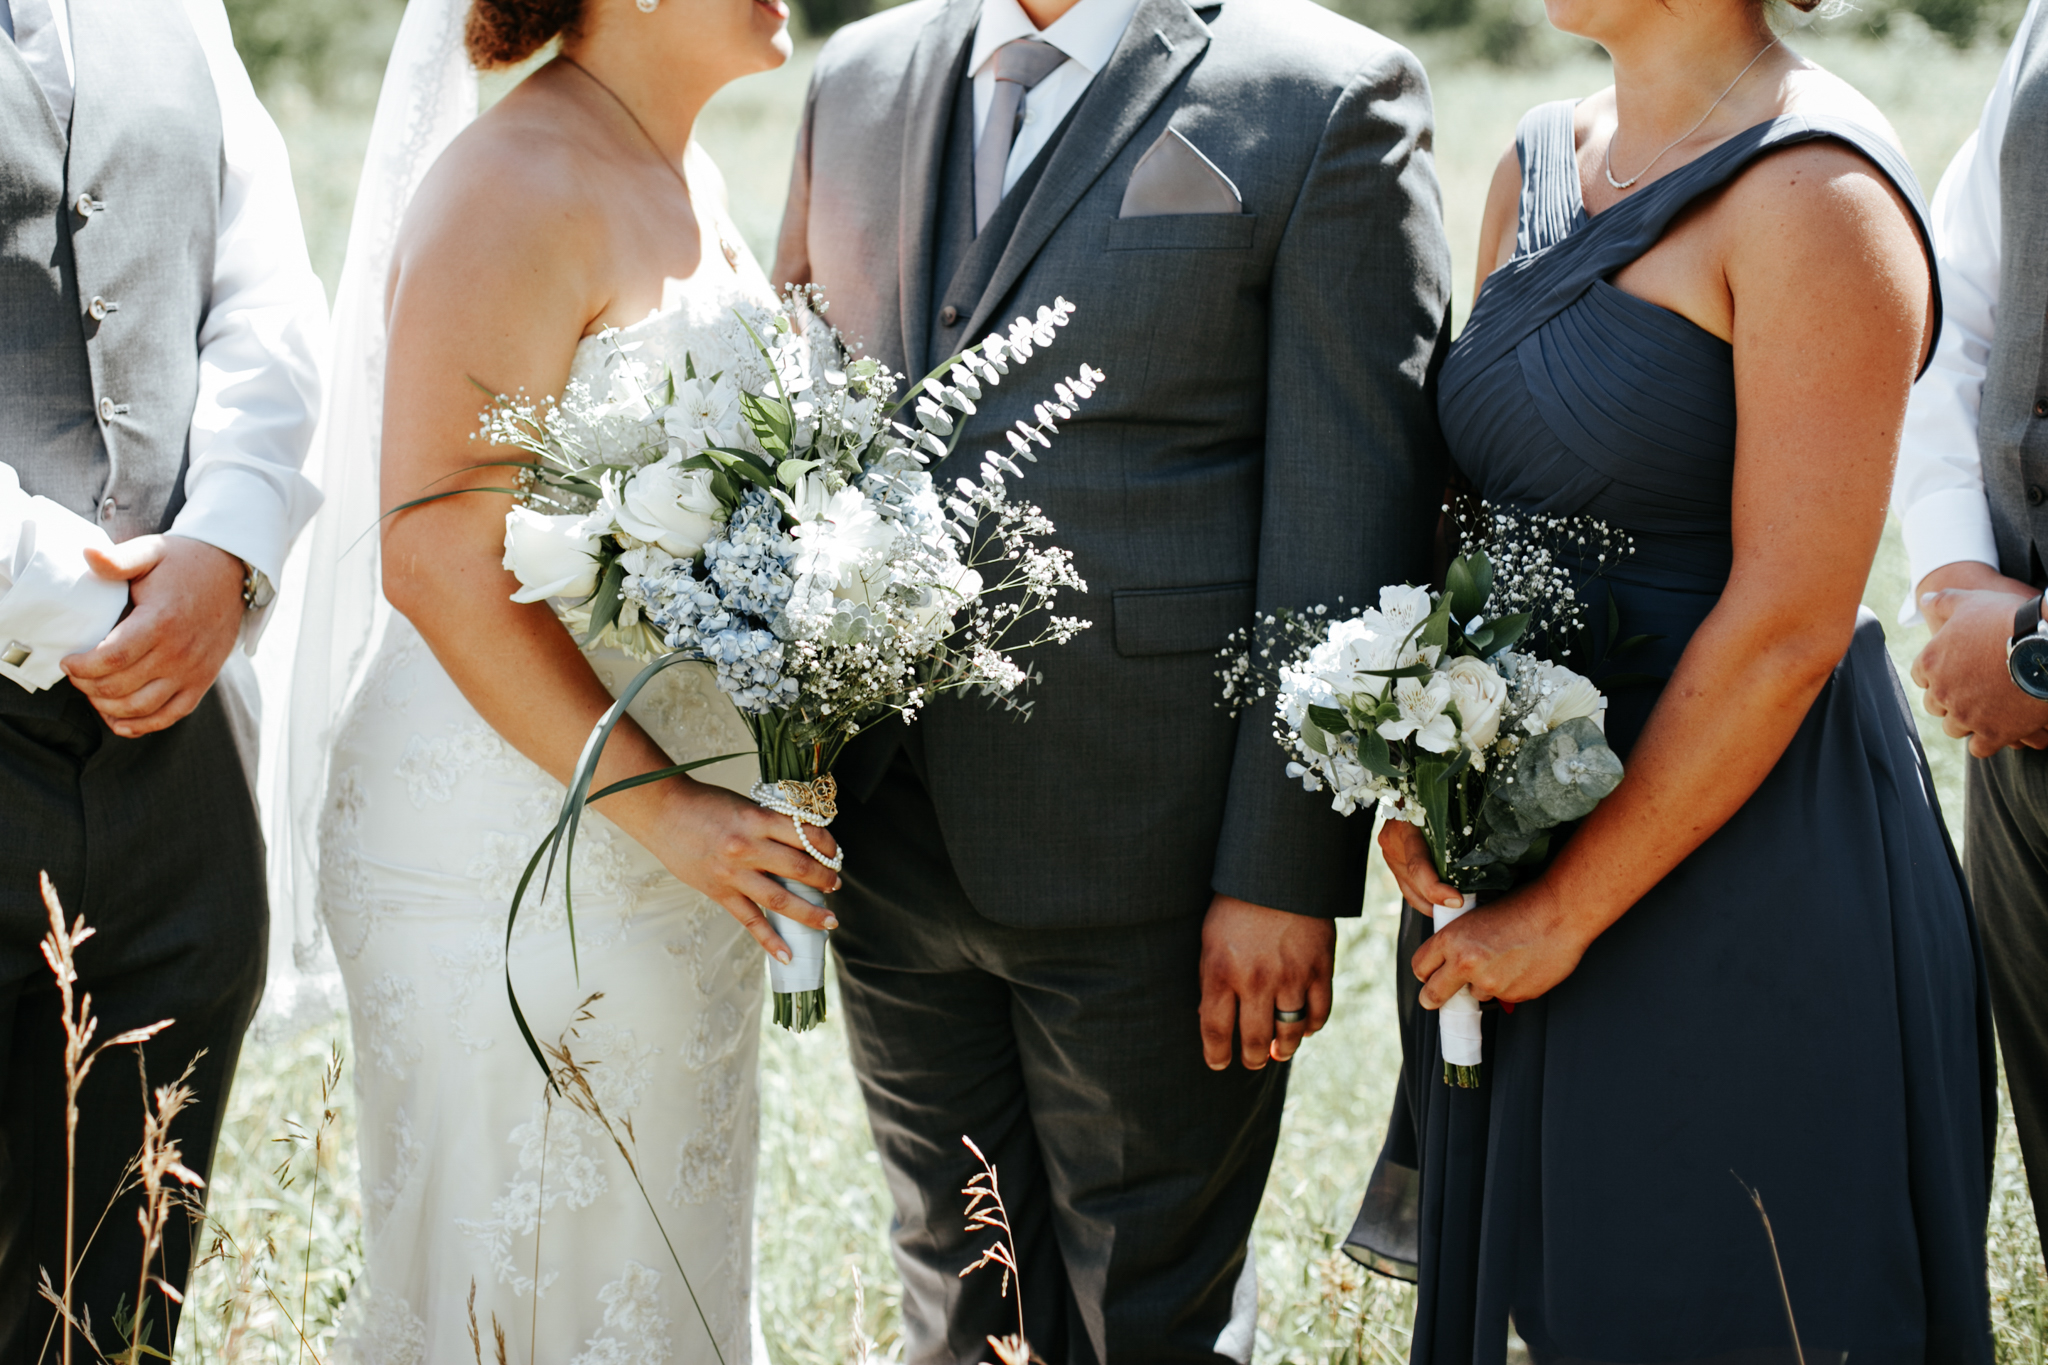 lethbridge-wedding-photographer-love-and-be-loved-photography-trent-danielle-galt-reception-picture-image-photo-102.jpg